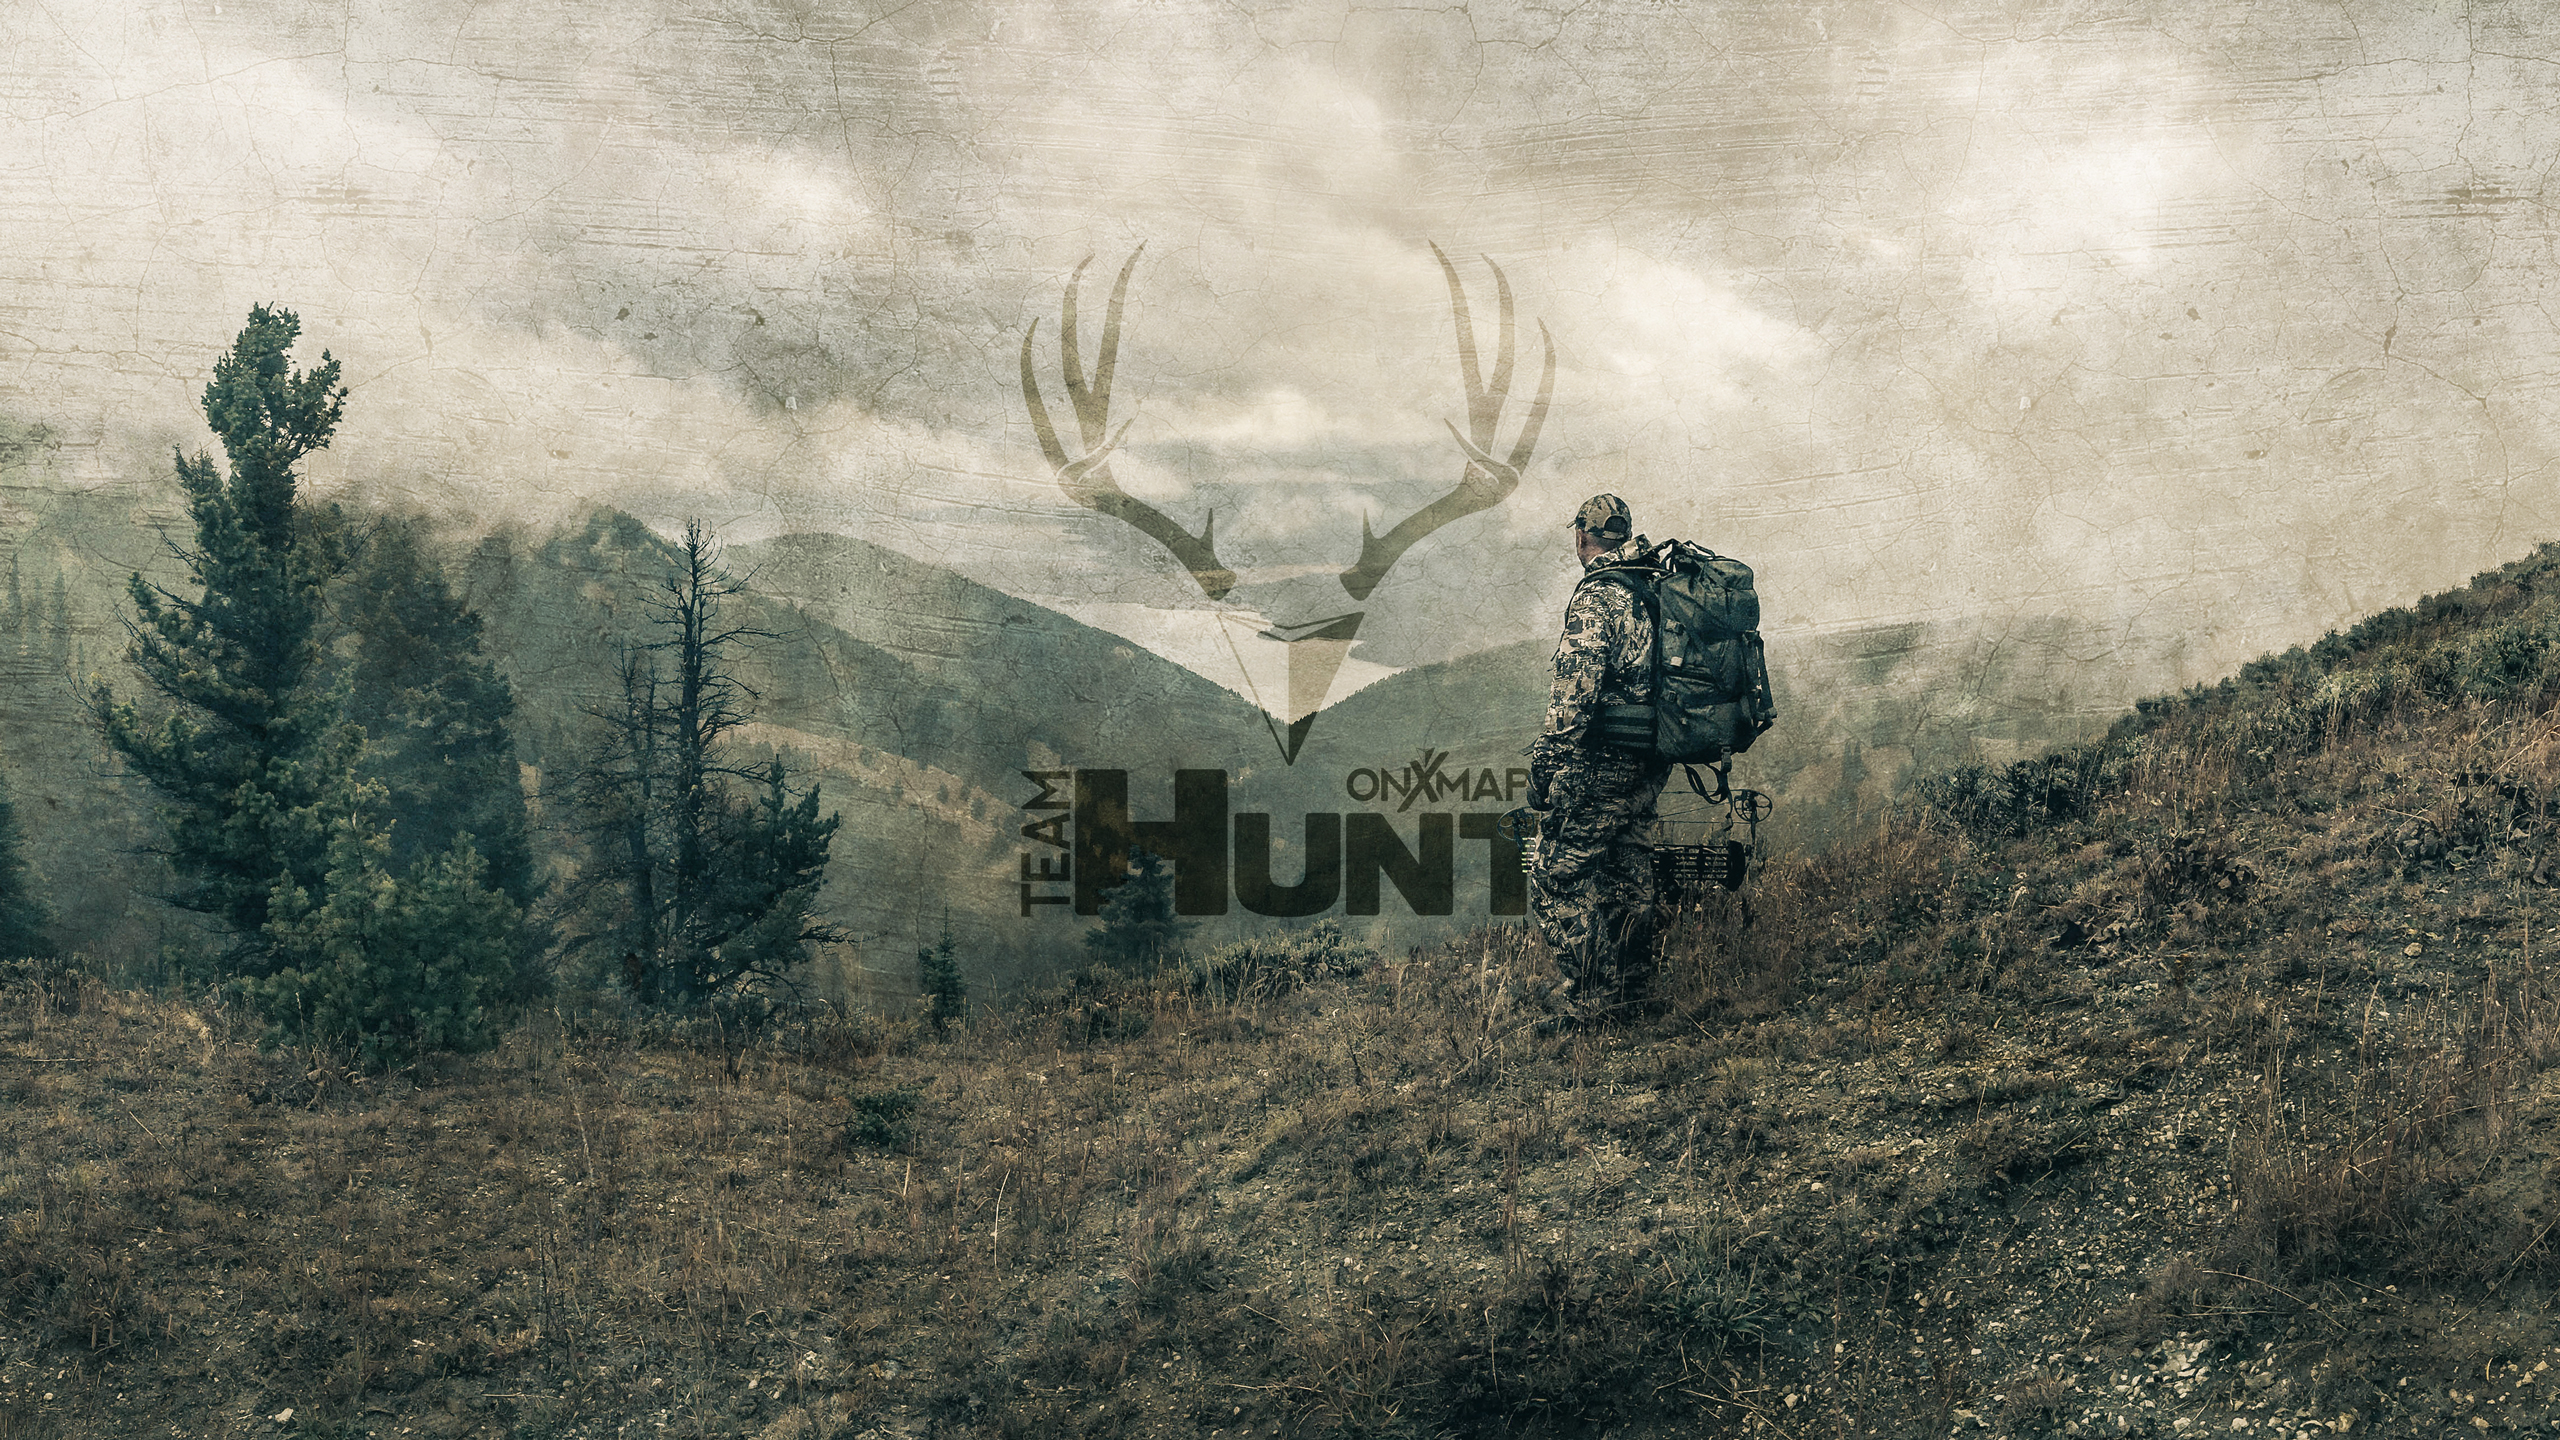 Hunting Desktop Wallpapers | Hunting Themed Wallpaper